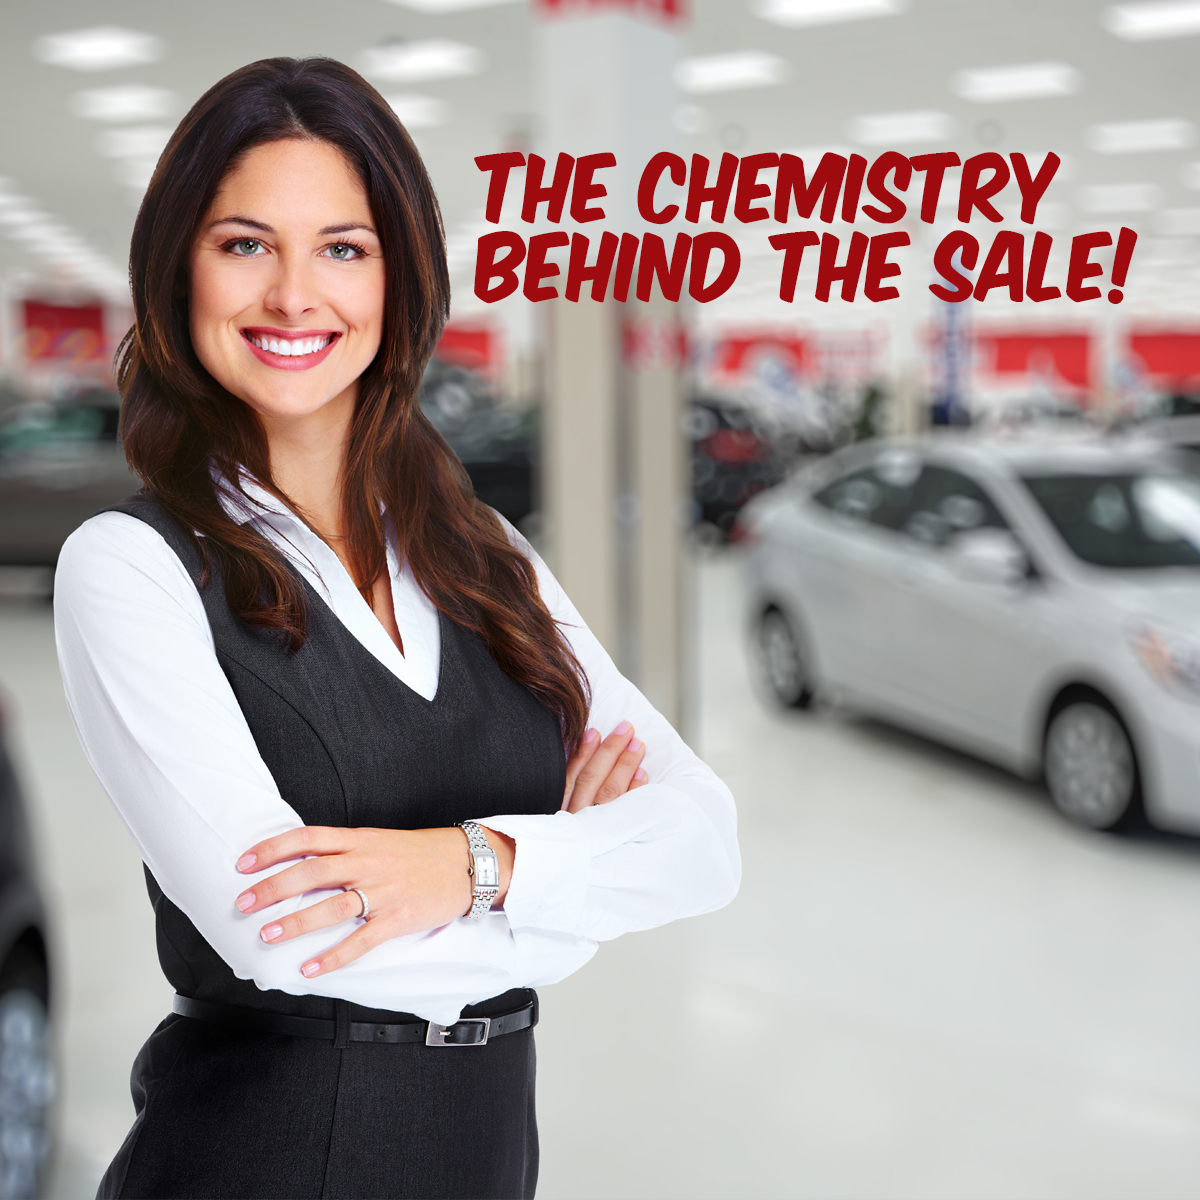 The Chemistry Behind The Sale